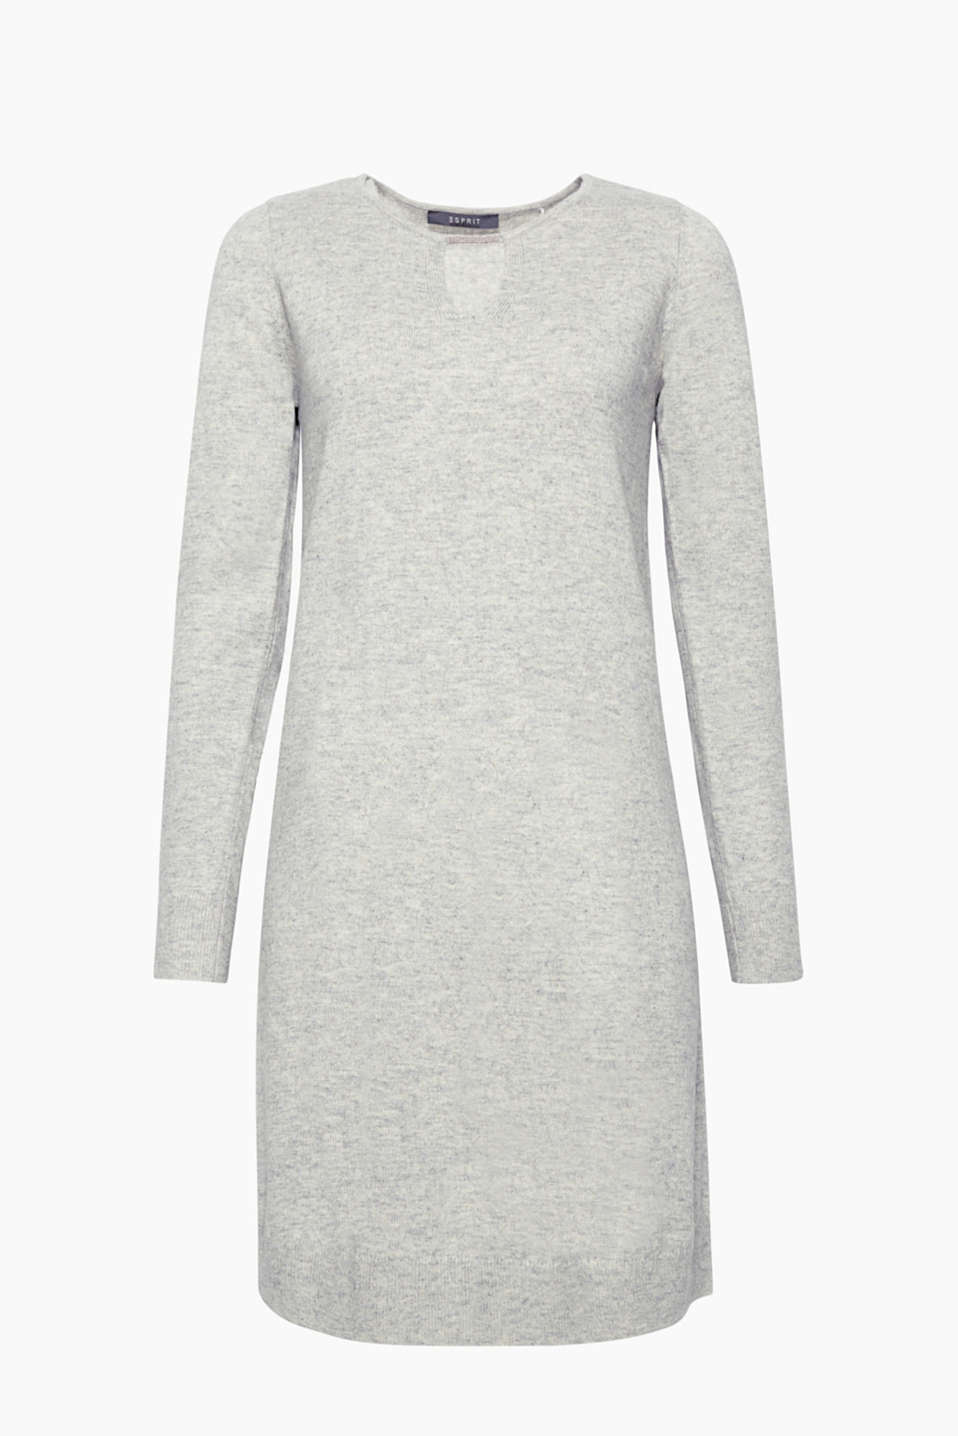 This knitted dress with elegant cashmere and bead-embellished keyhole will feel luxurious on your skin!